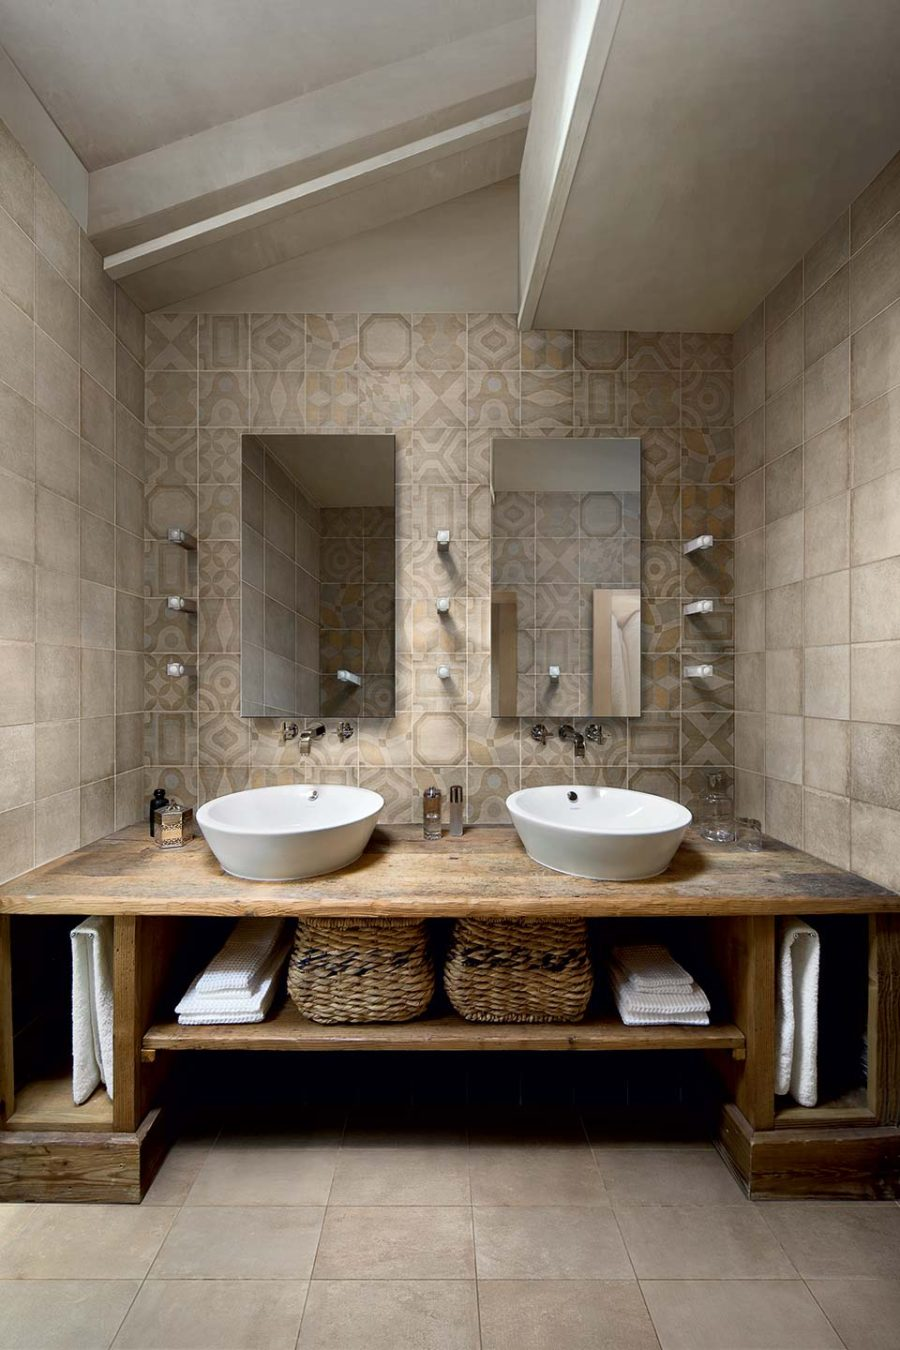 Memory of Cerim tiles in a bathroom